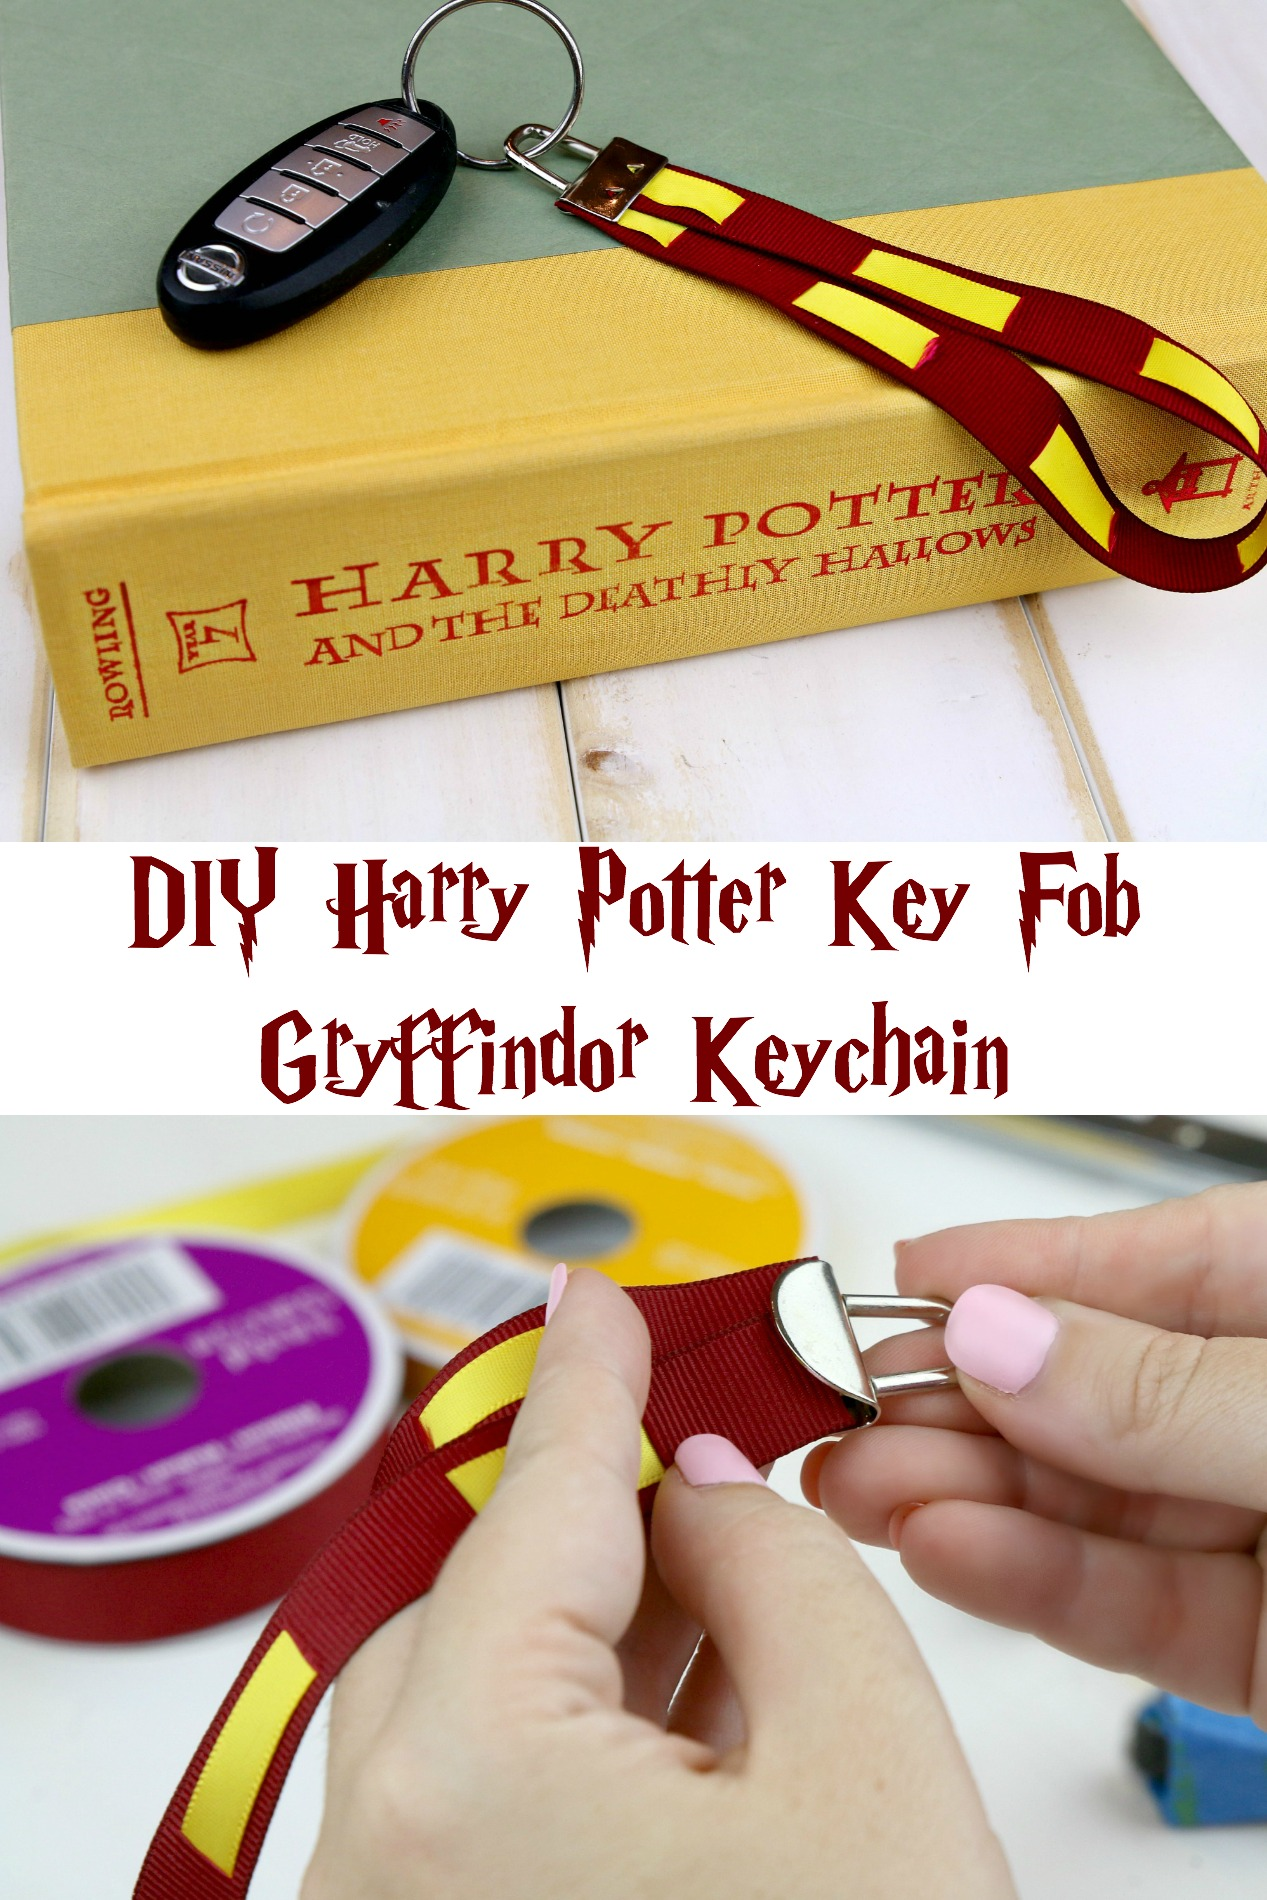 DIY Harry Potter Key Fob - Gryffindor Keychain